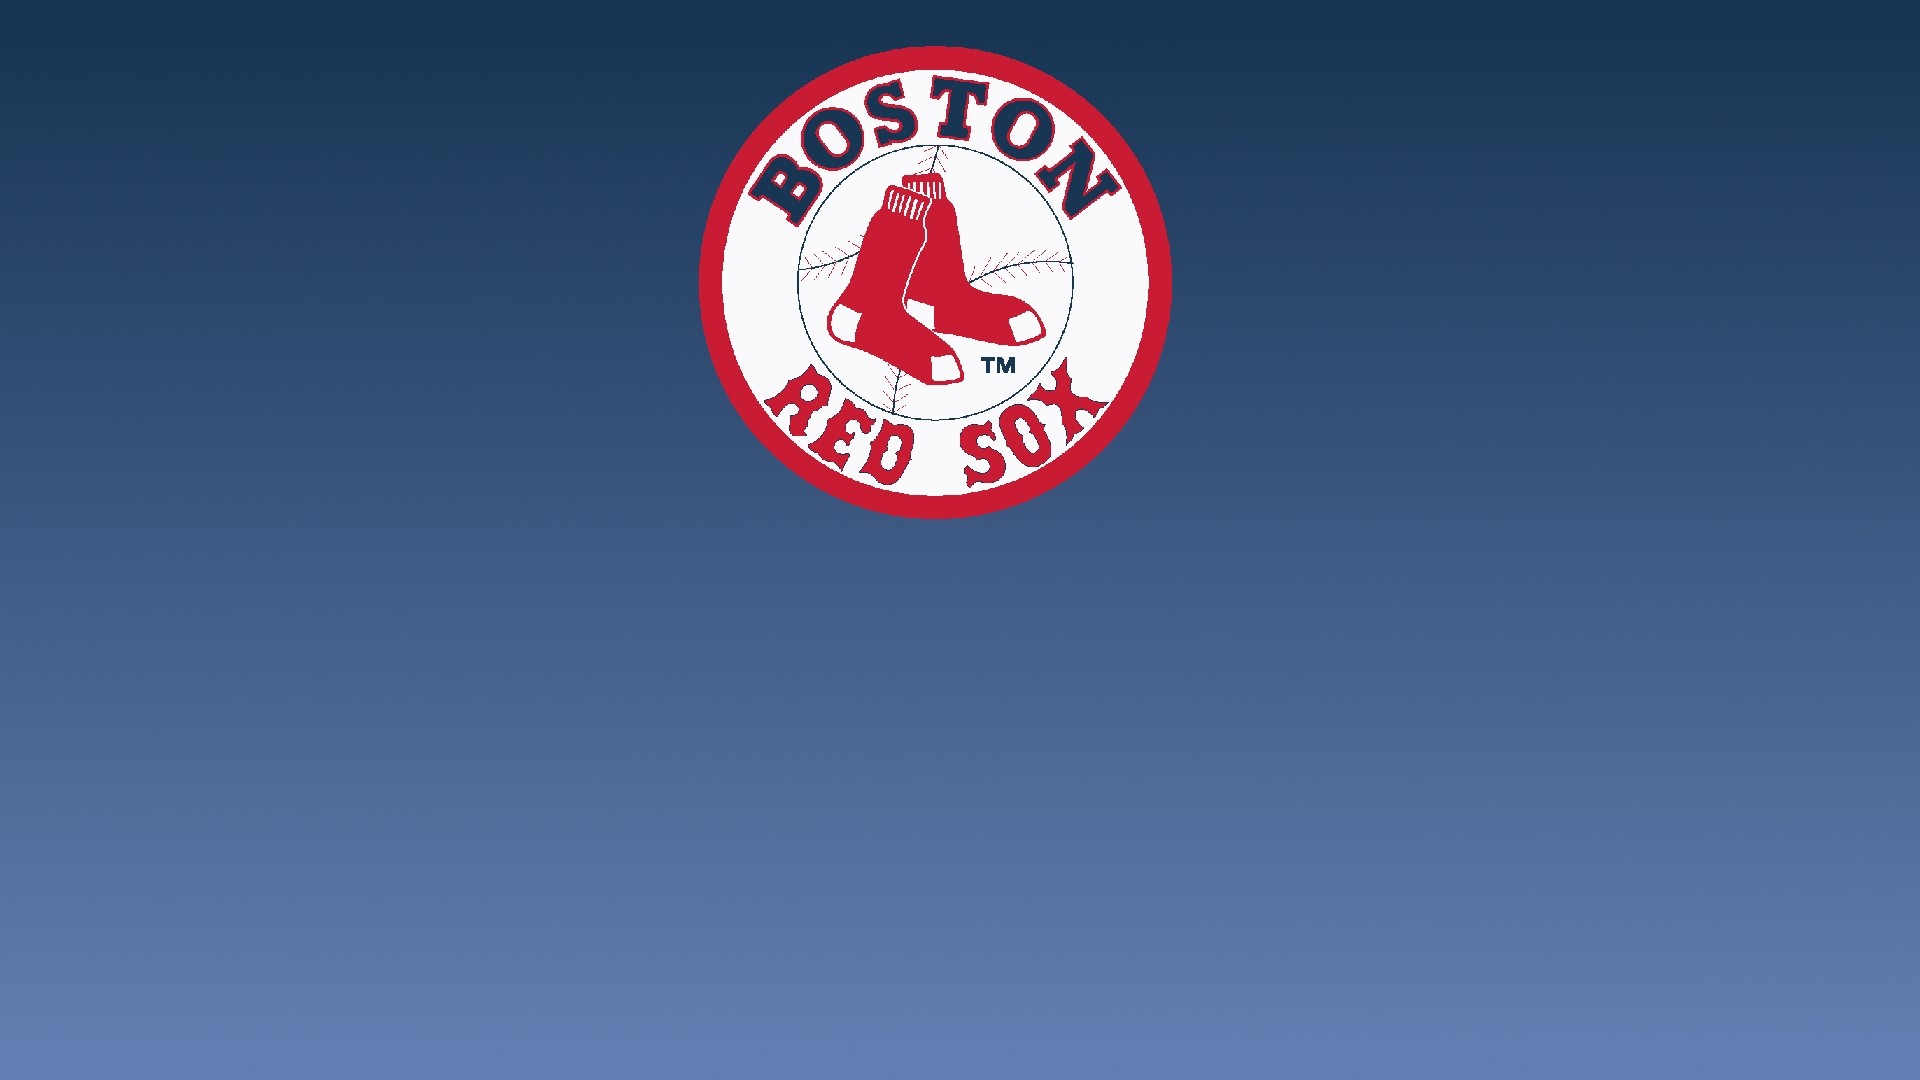 1920x1080 Red Sox Logo Wallpaper Hd images pictures - NearPics